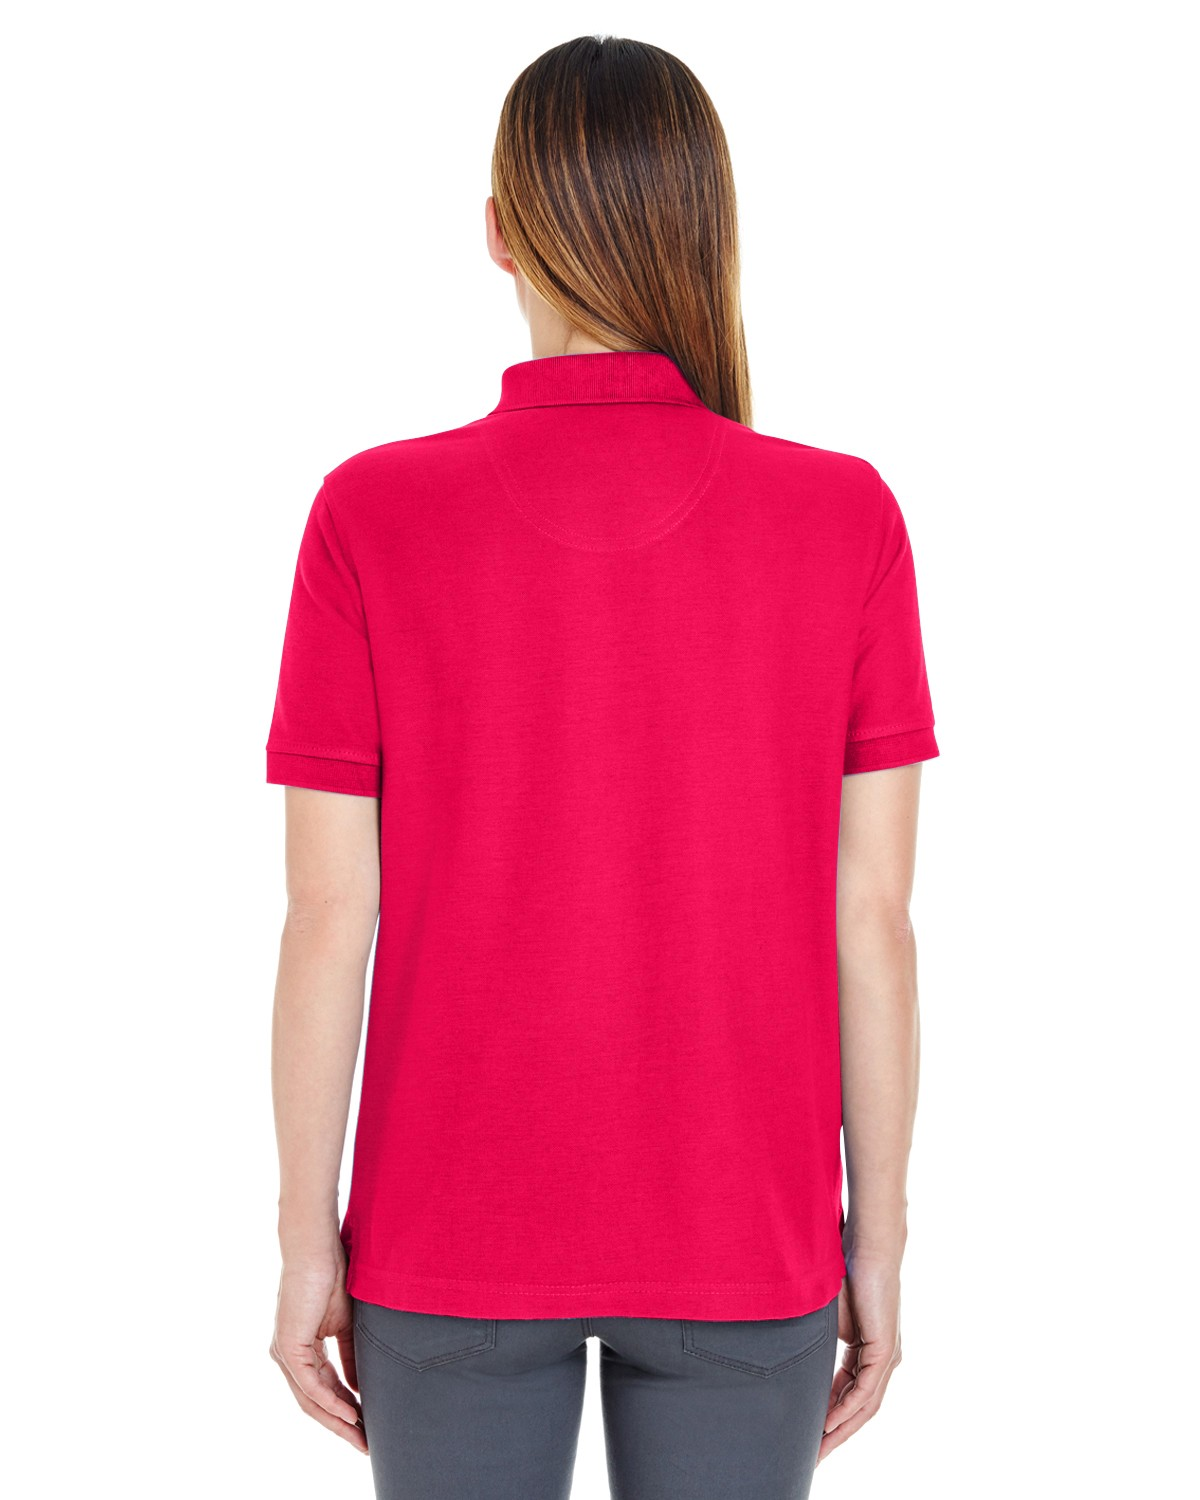 8541 UltraClub RED